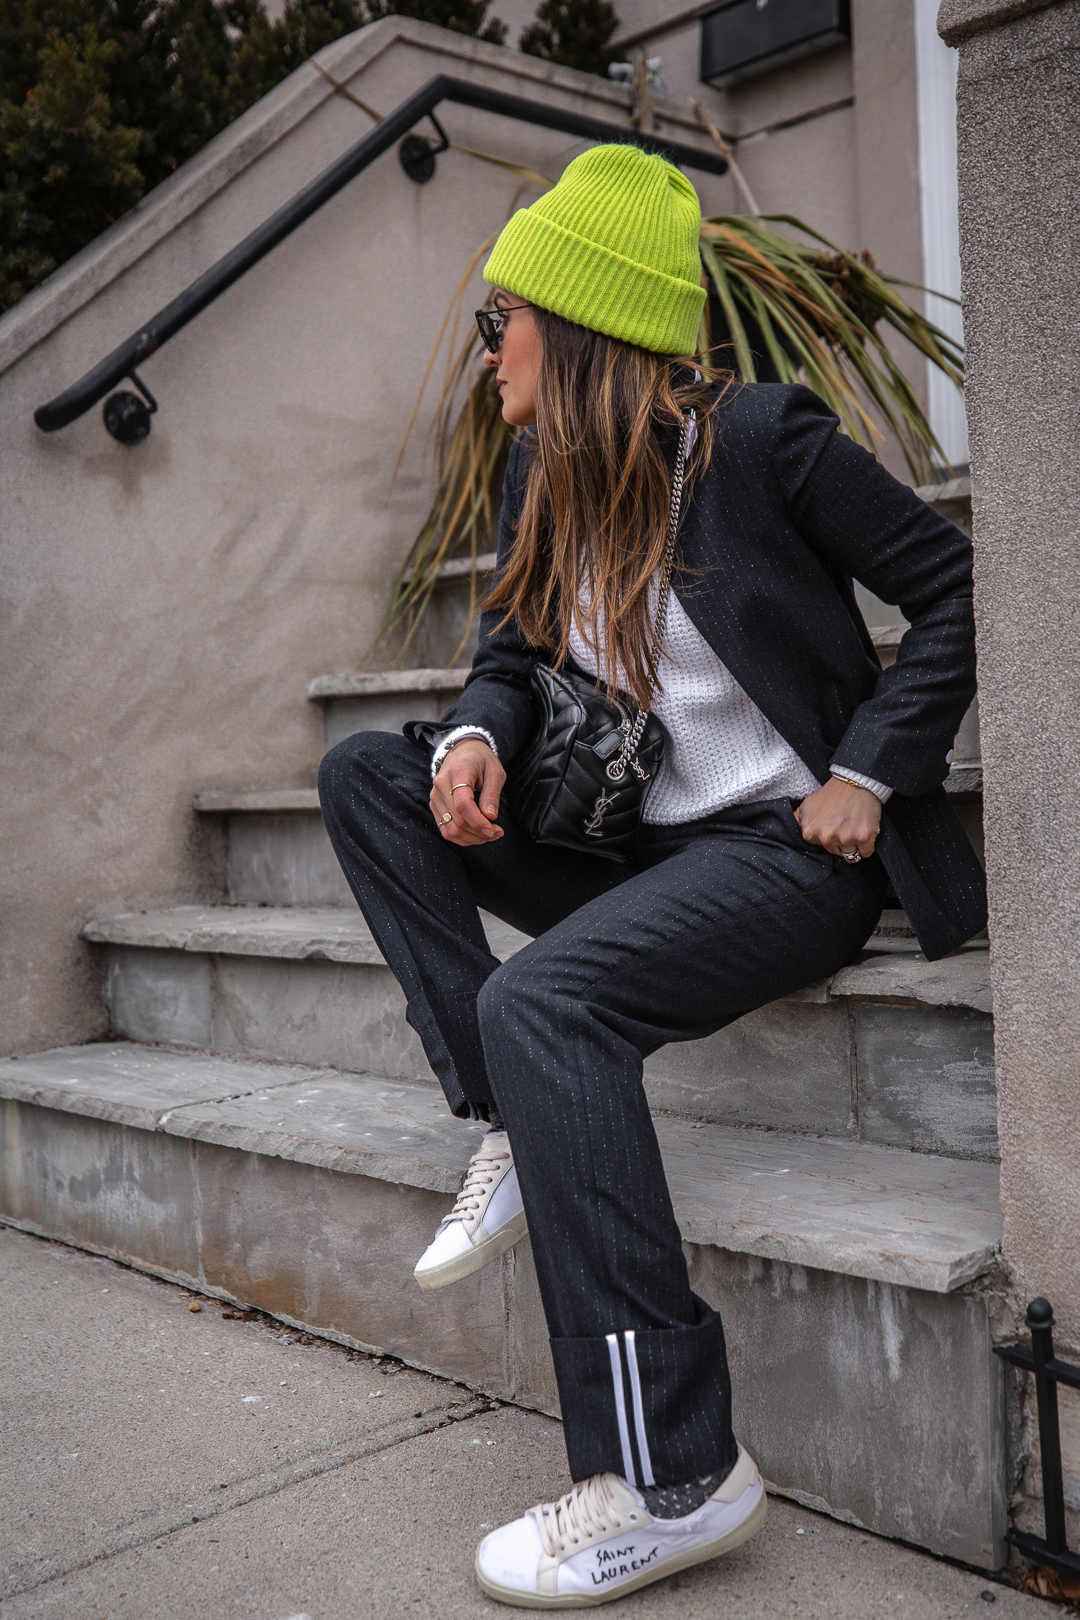 Nathalie Martin - Zadig & Voltaire pinstripe suit, Acne Studios white knitted sweater, Neon green beanie, Saint Laurent LouLou bowling bag and white canvas sneakers, Aritzia Stedman coat, street style, woahstyle.com_5873.jpg